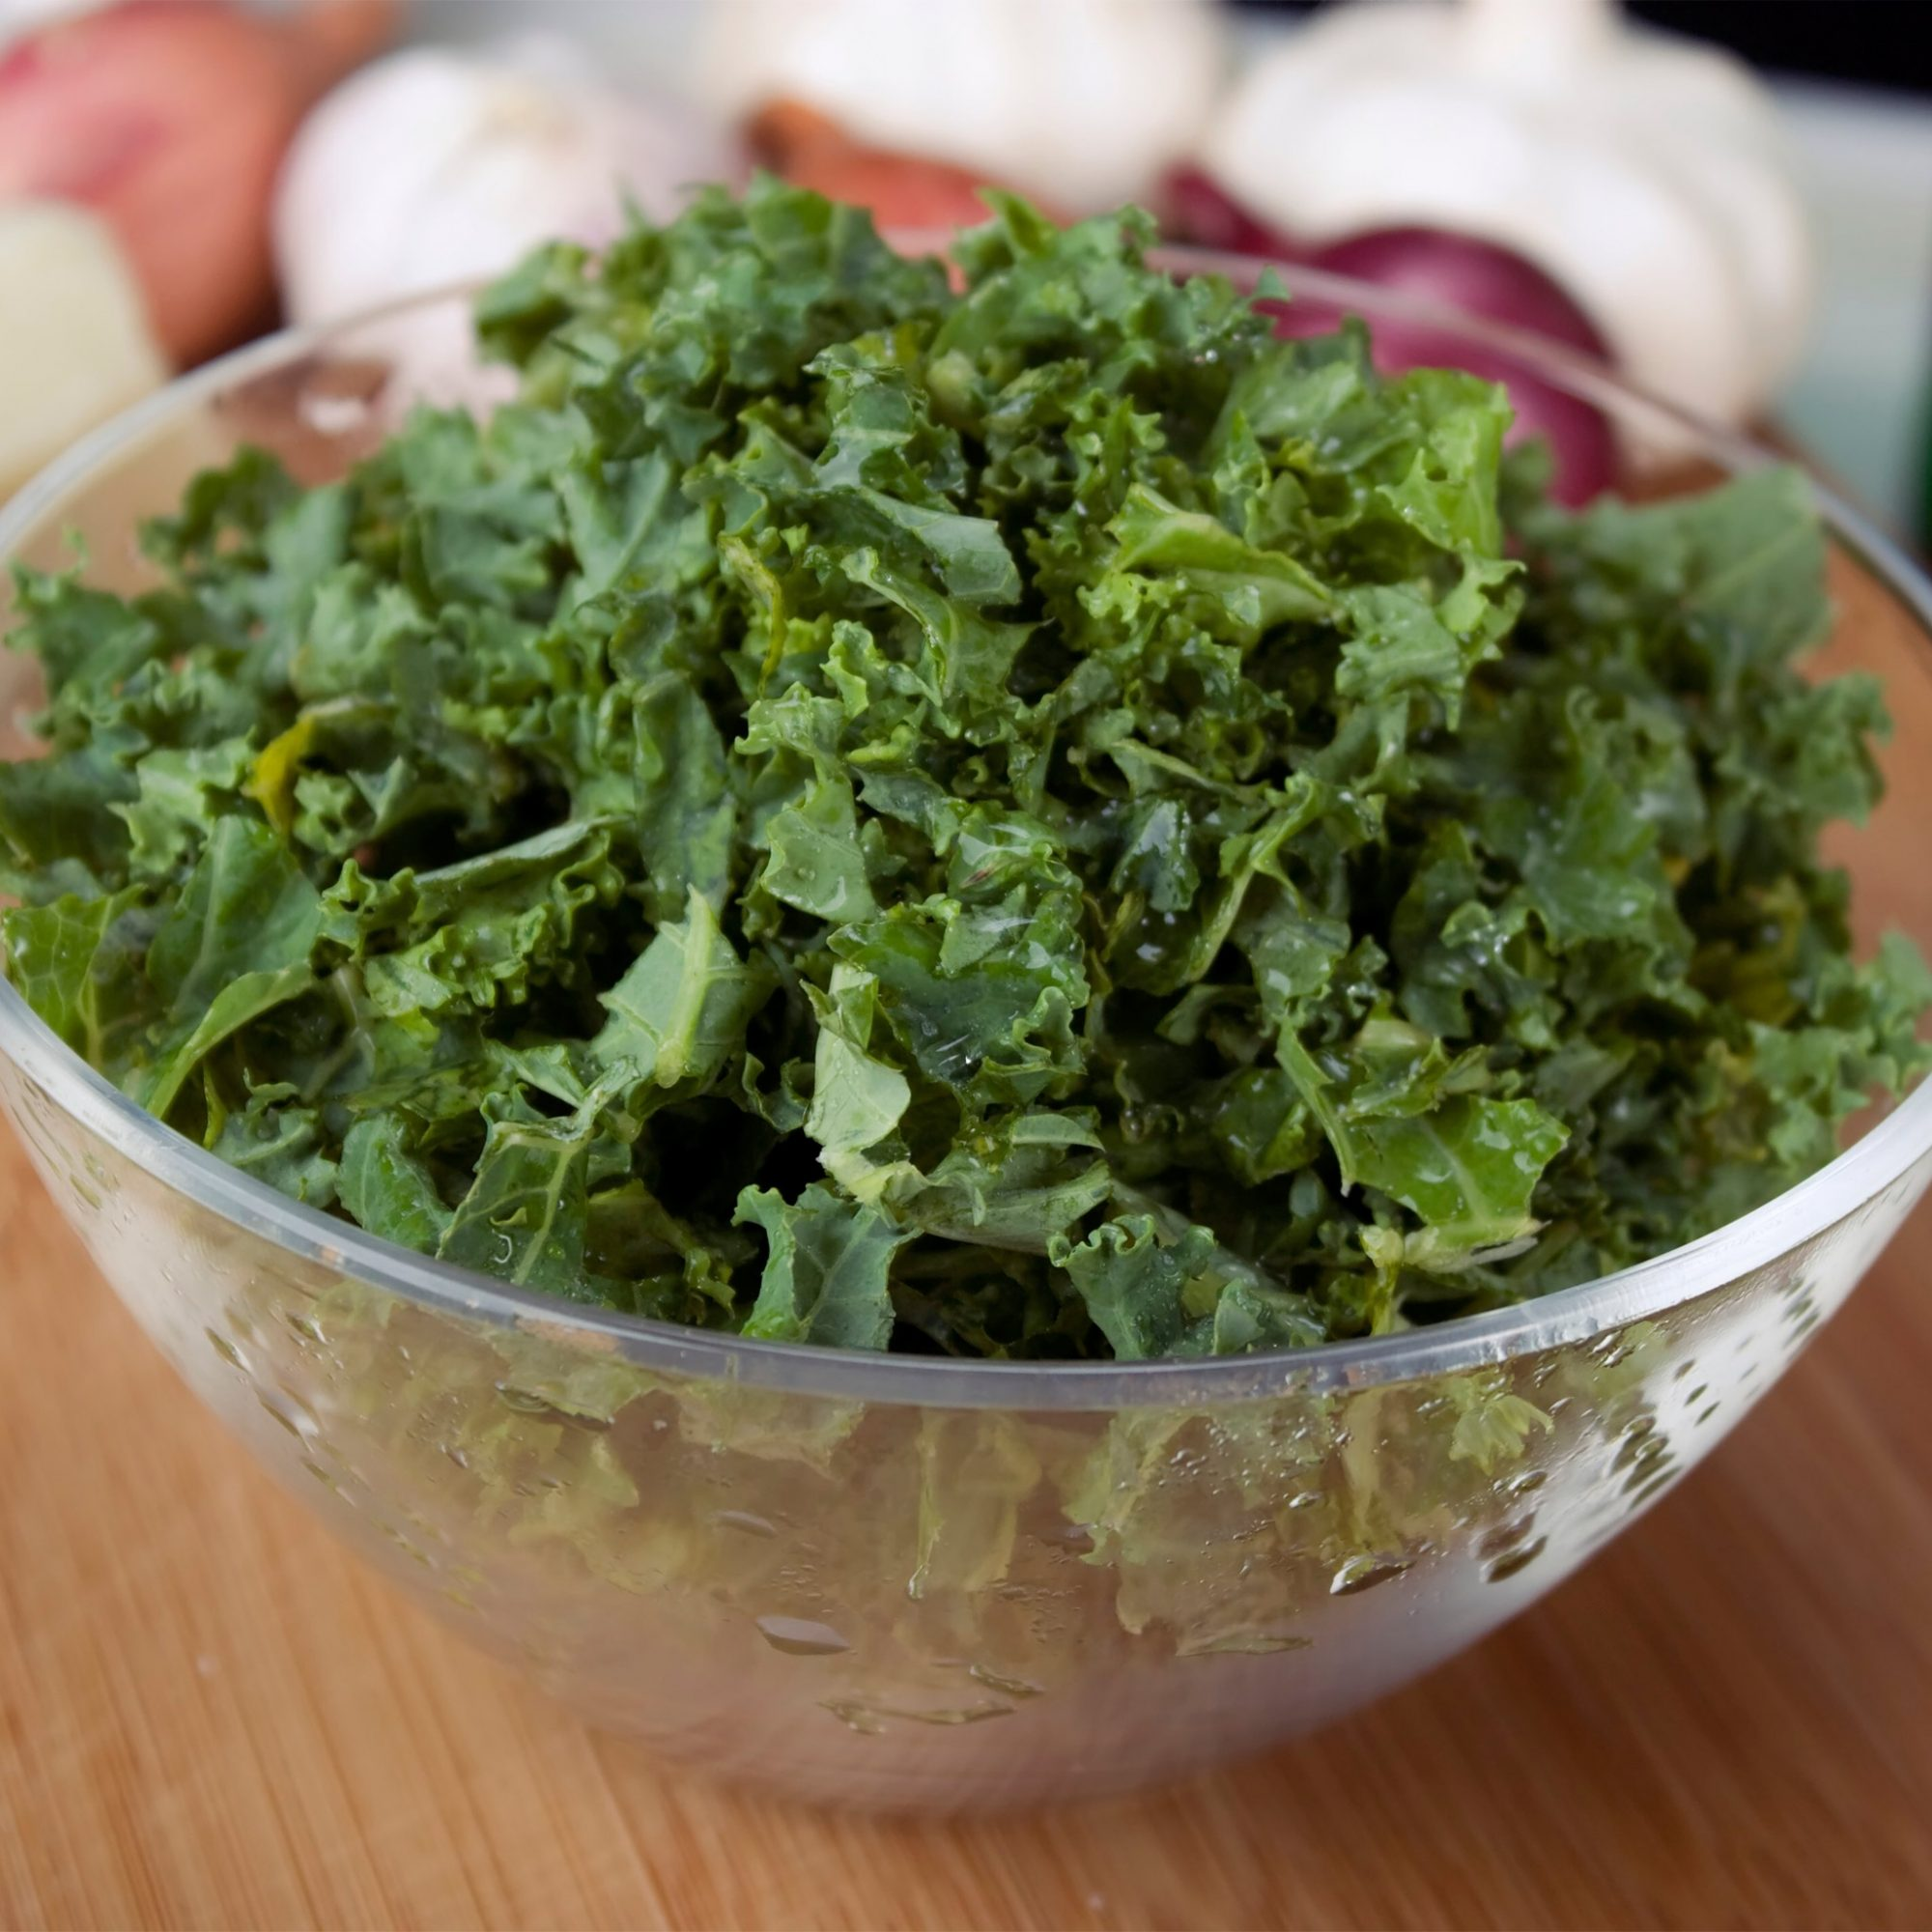 BOWL OF KALE